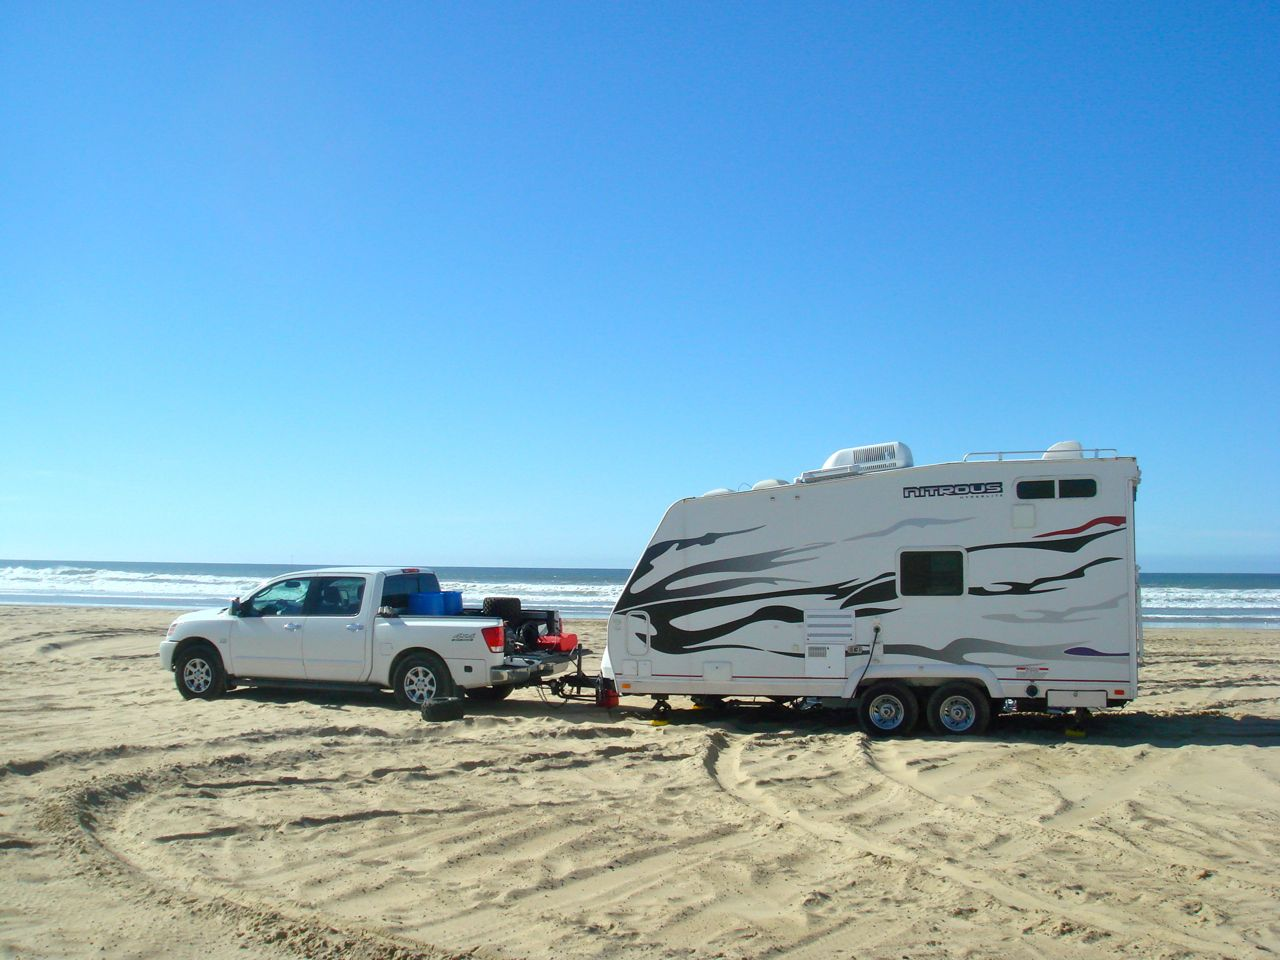 Click image for larger version  Name:pismo.jpg Views:61 Size:155.5 KB ID:11593